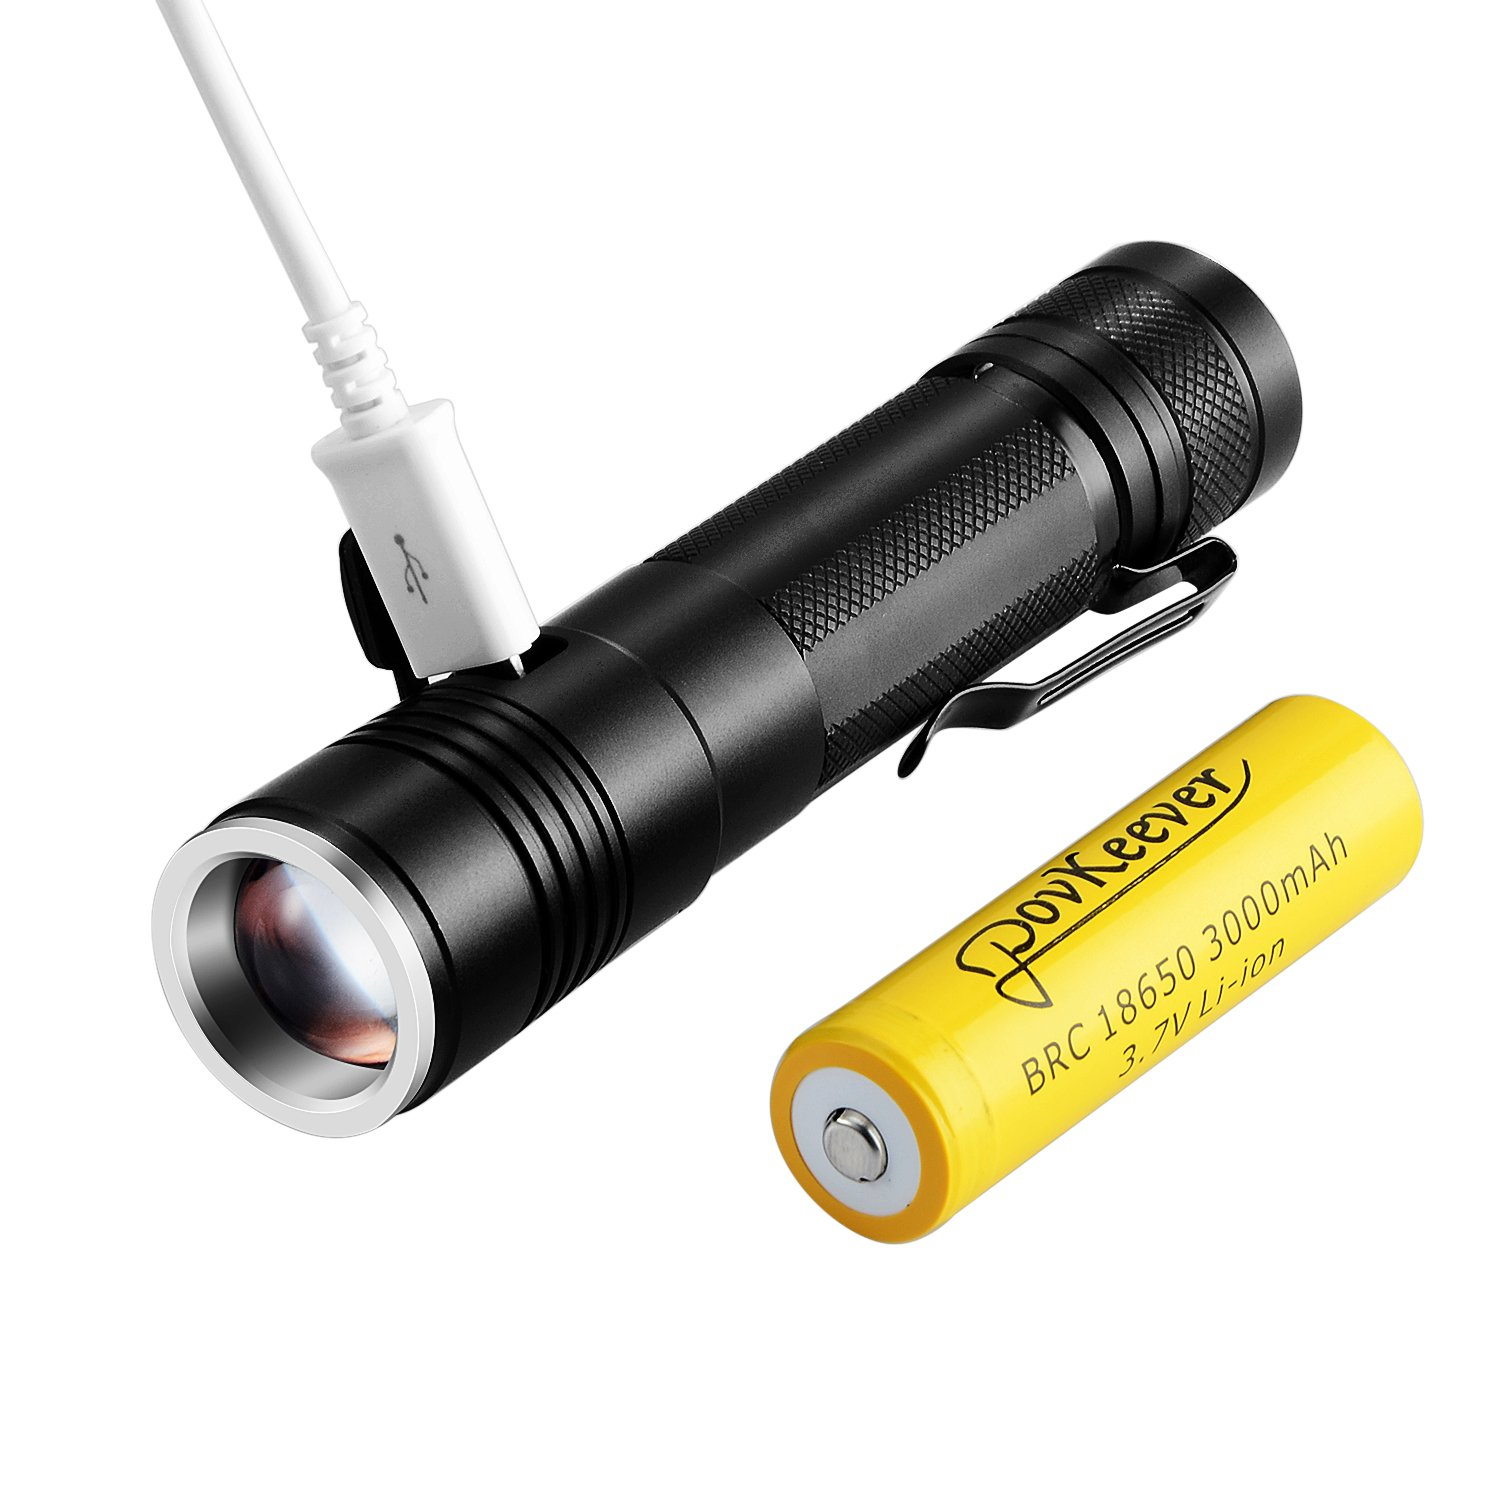 Povkeever Mini Torche Led Usb Rechargeable Flashlight 900 Lumen